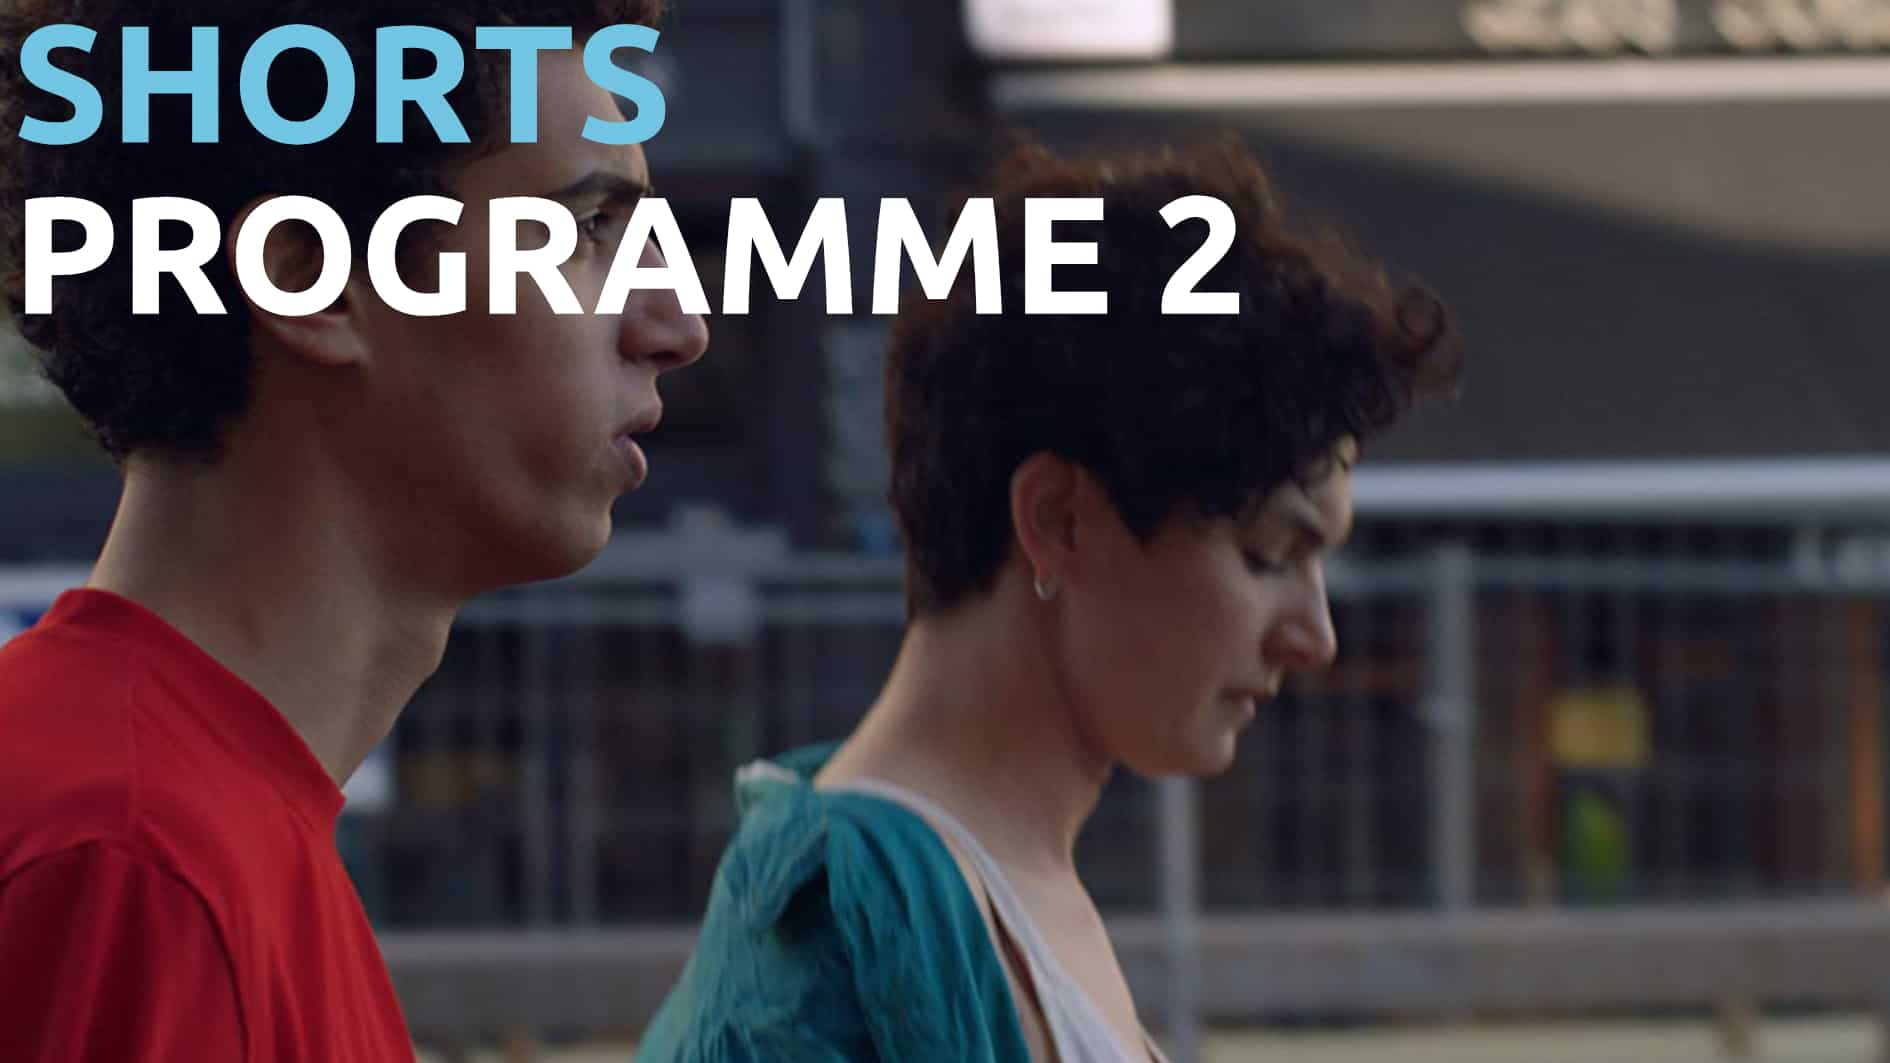 Amsterdam Lift-Off Film Festival 2018 - Shorts programme 2